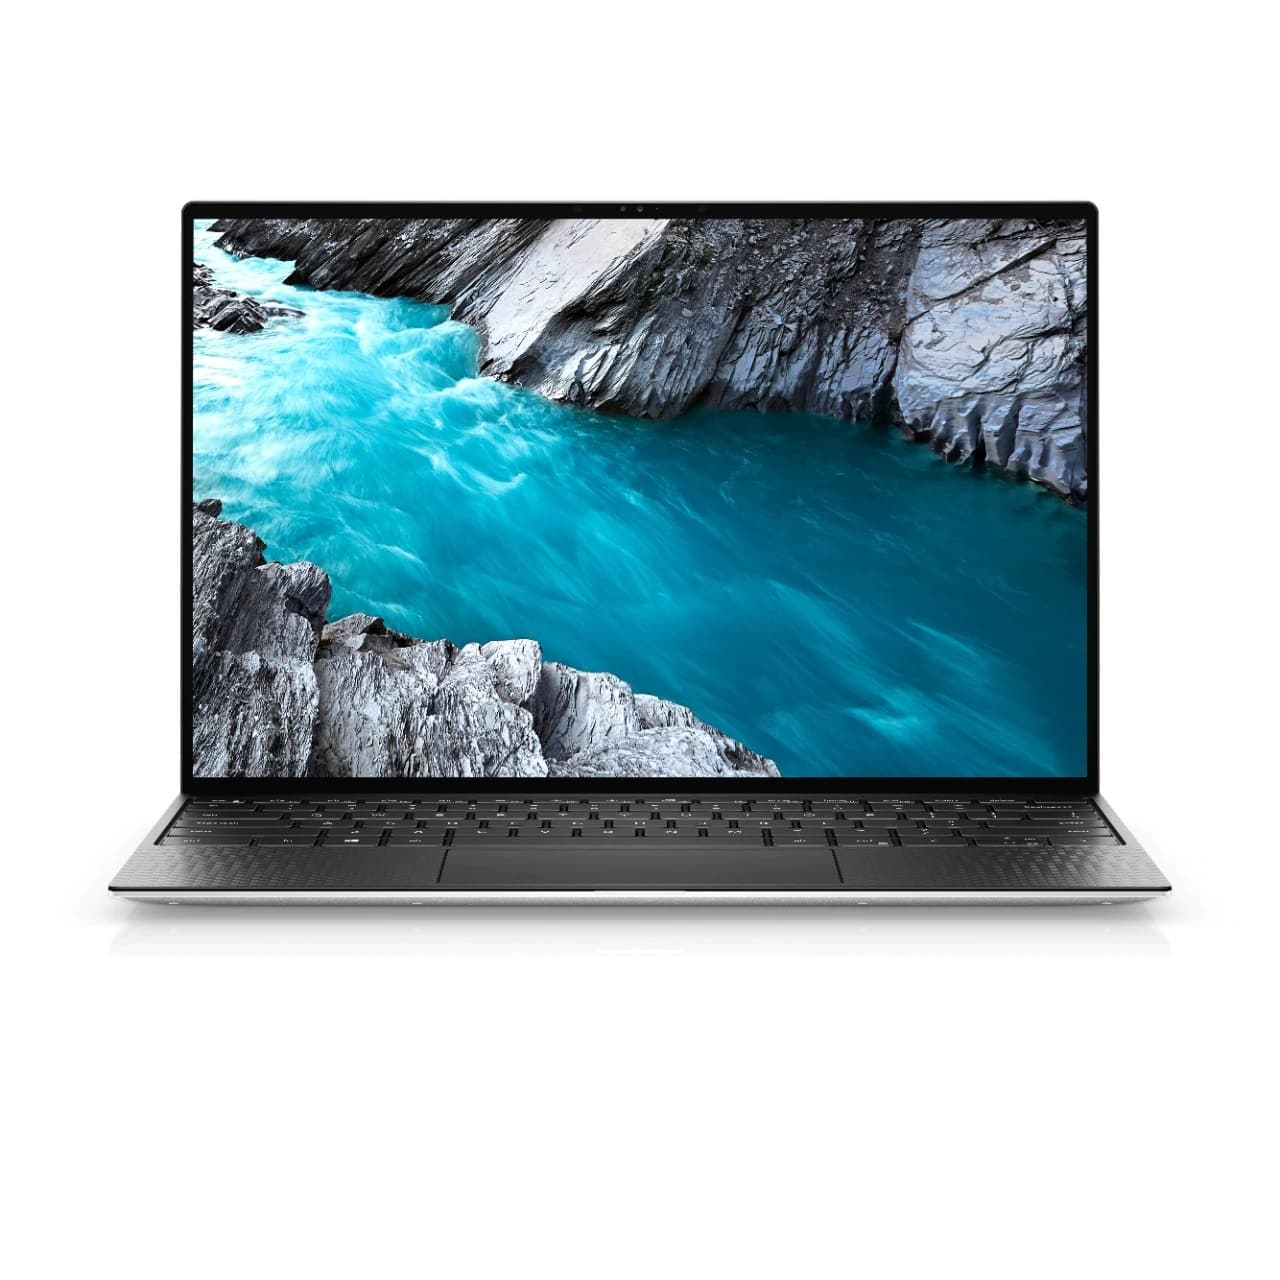 "Dell Refurb Laptop: XPS 13 9300: i5-1035G1, 13.4"" 1920x1200 Touch, 8GB, 256GB SSD"